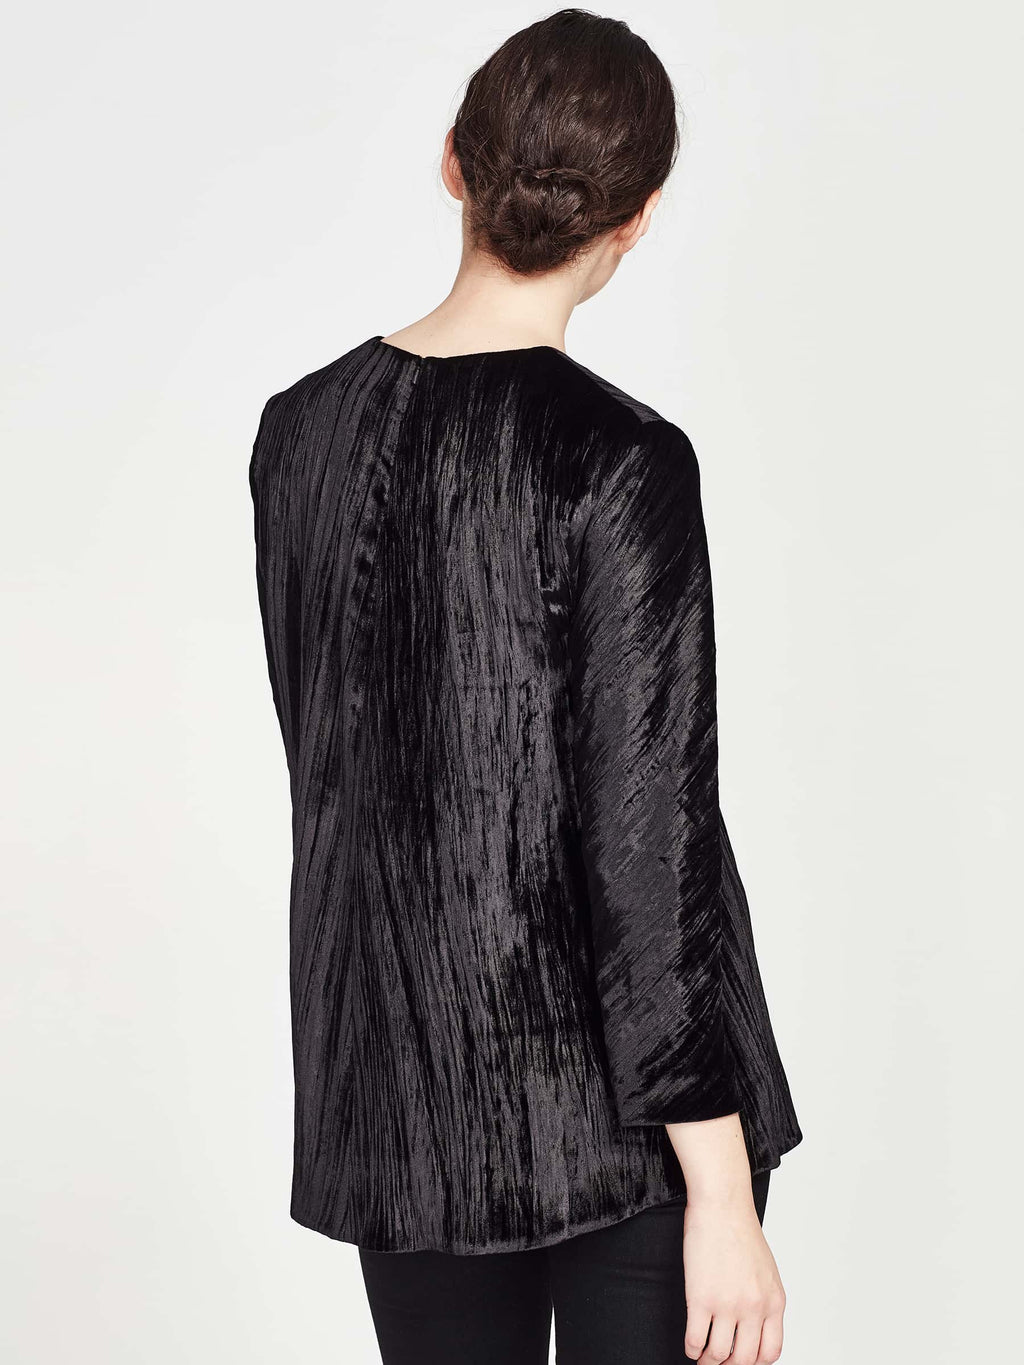 Didi Top (Textured Velvet) Oil